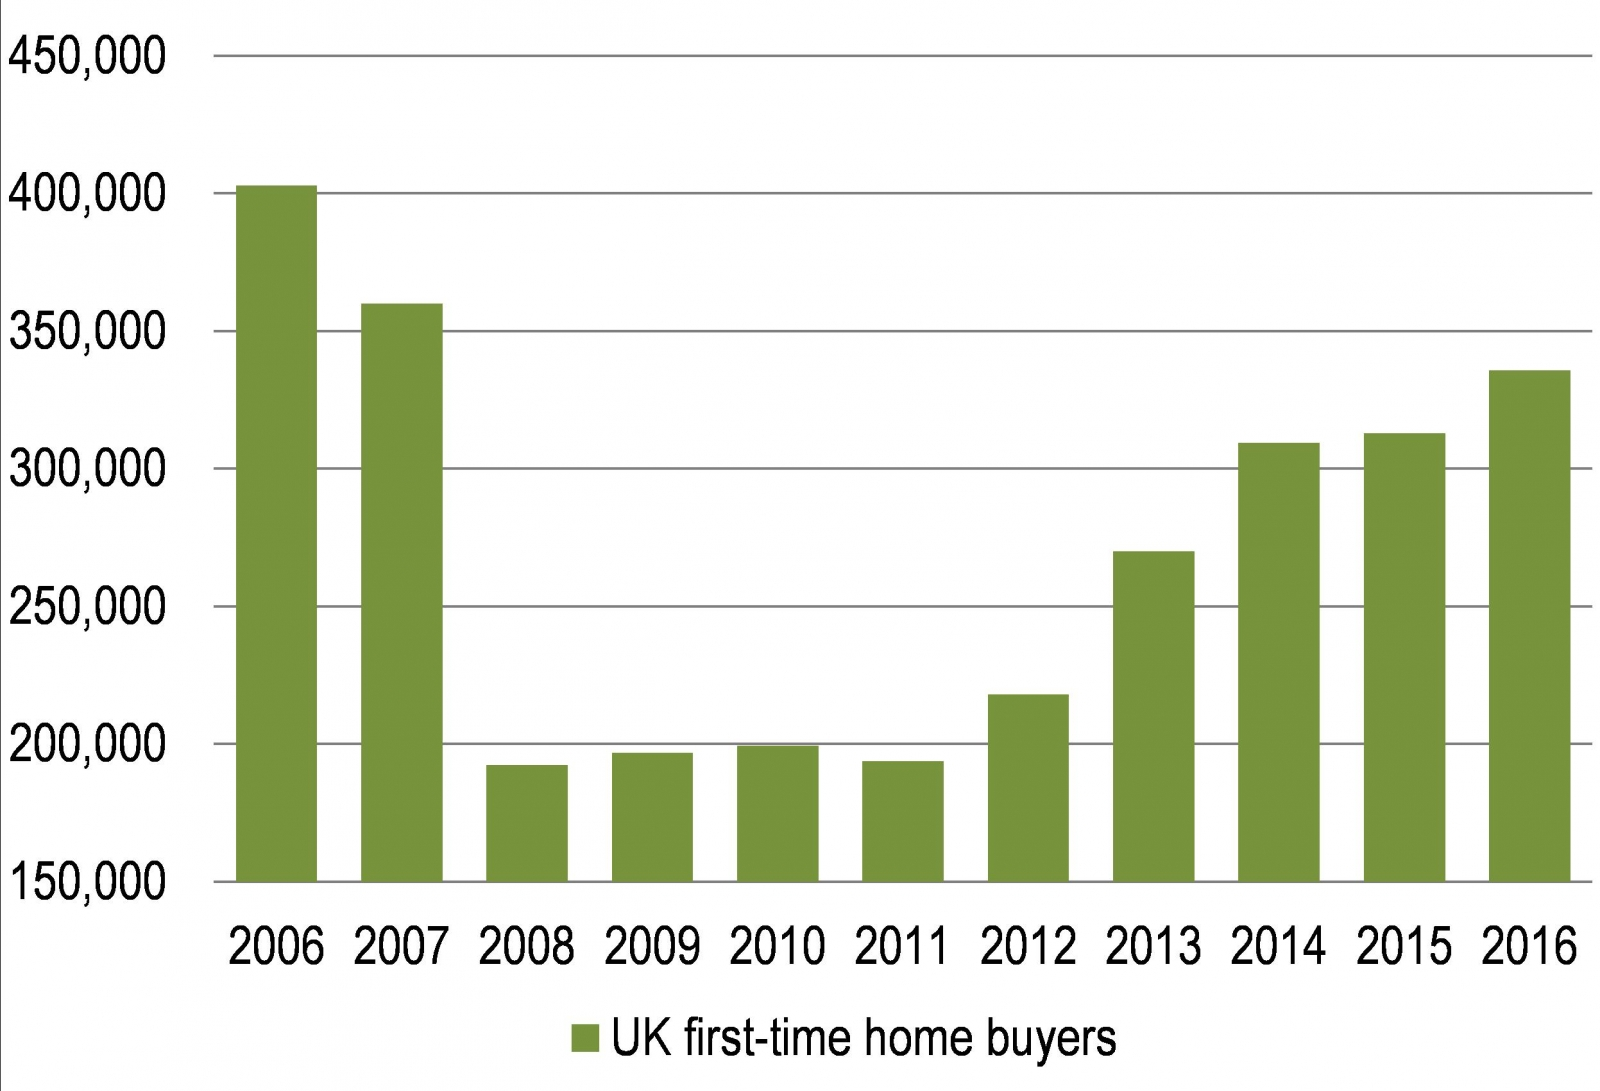 1.	The most first-time home buyers since 2007